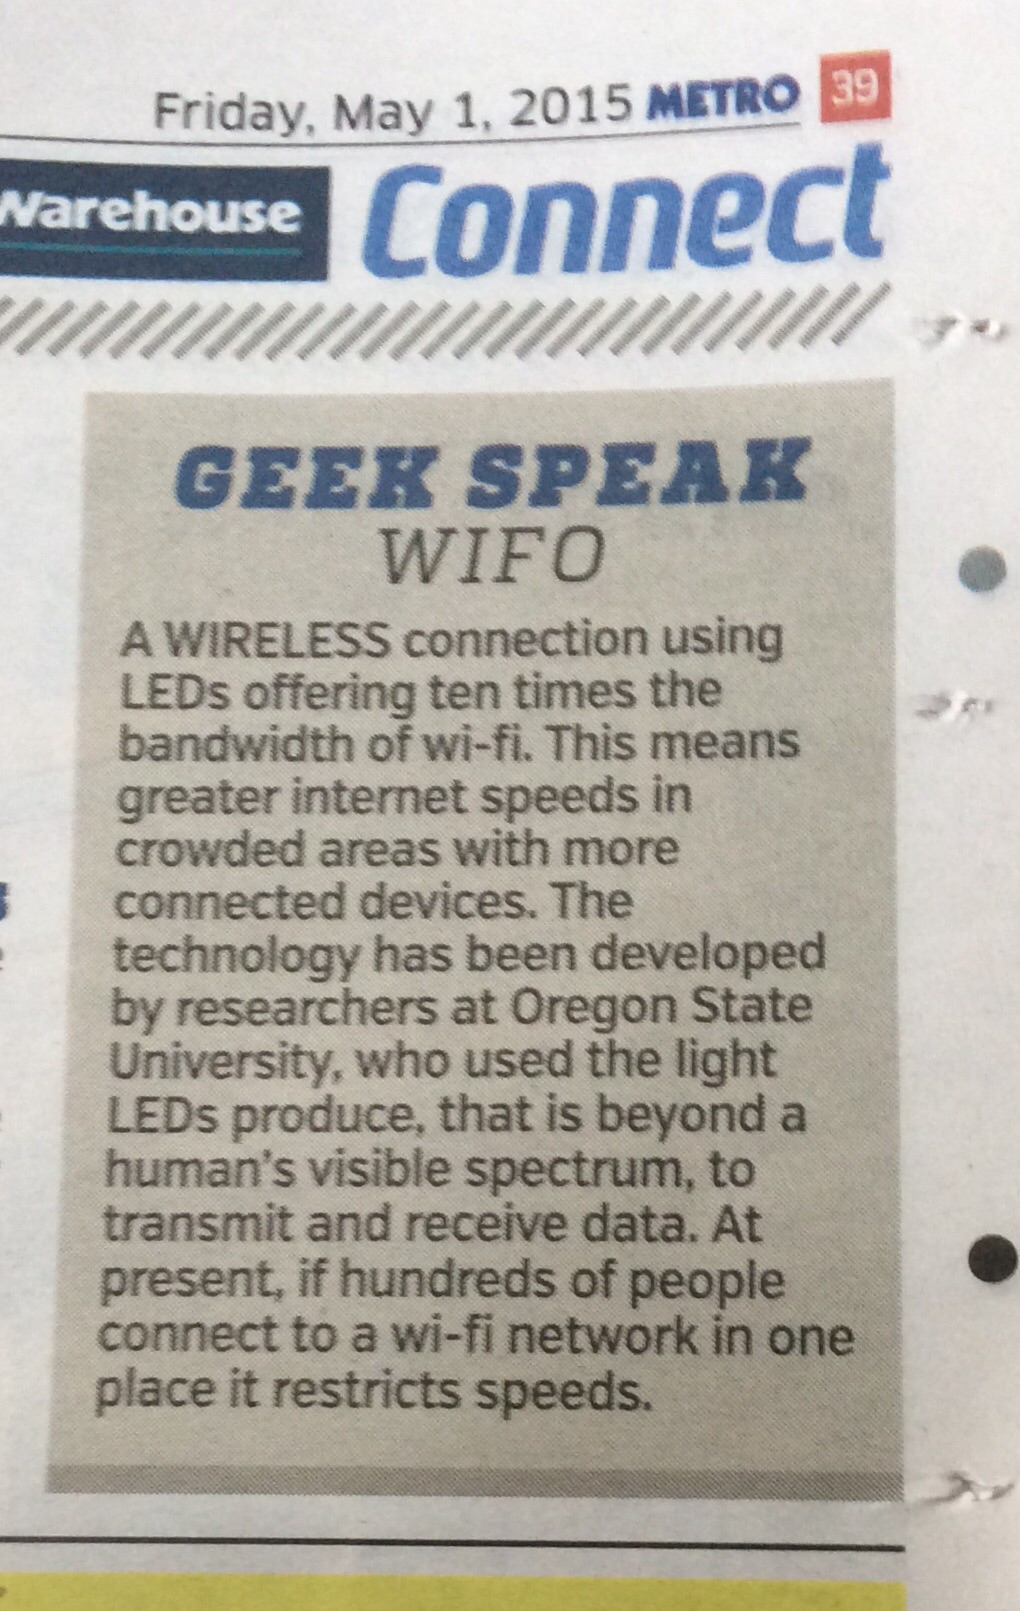 Metro article Geek Speak WiFo